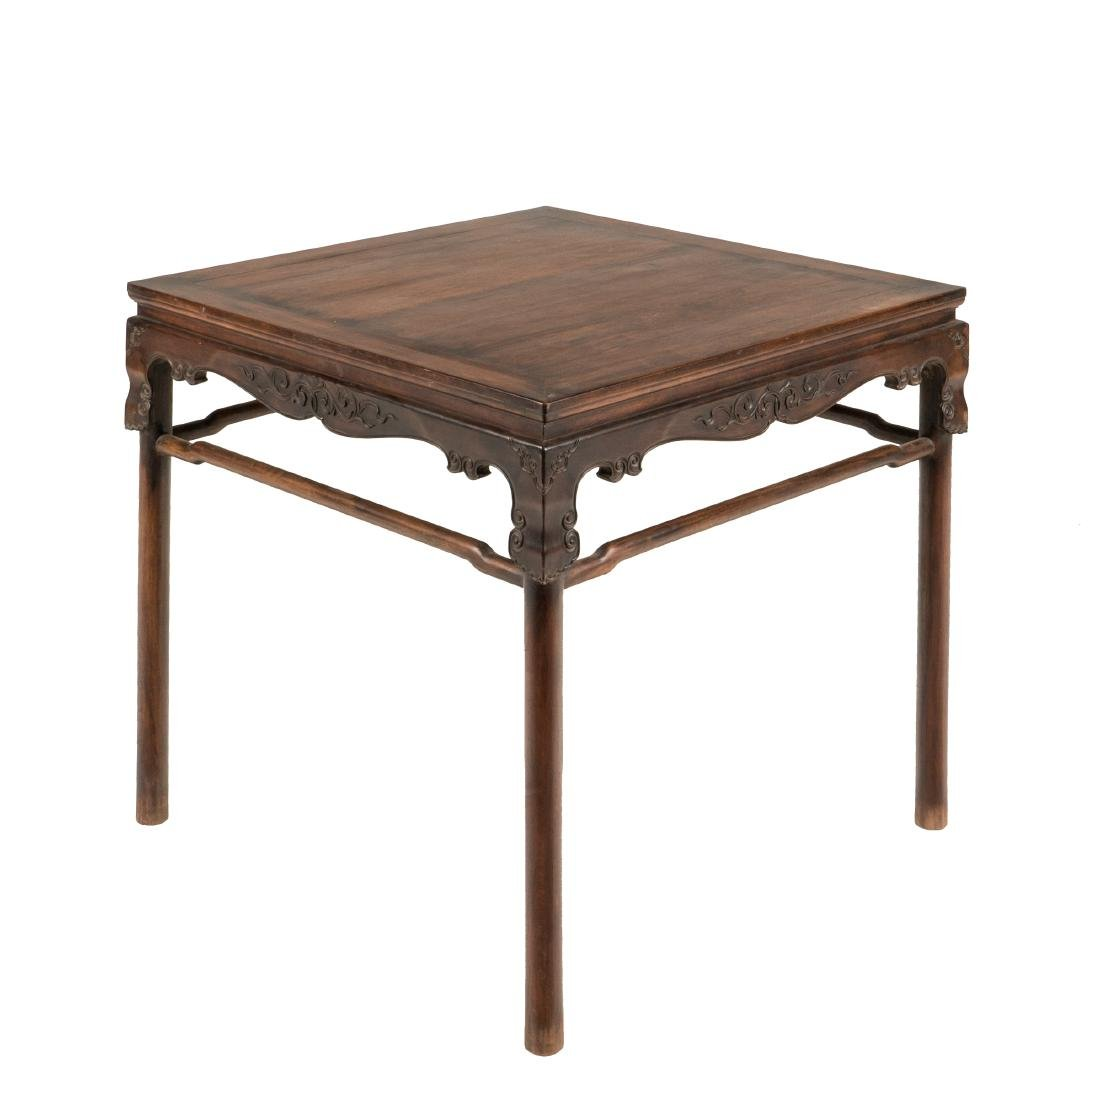 18TH C HUANGHUALI WAISTED SQUARE GAME TABLE